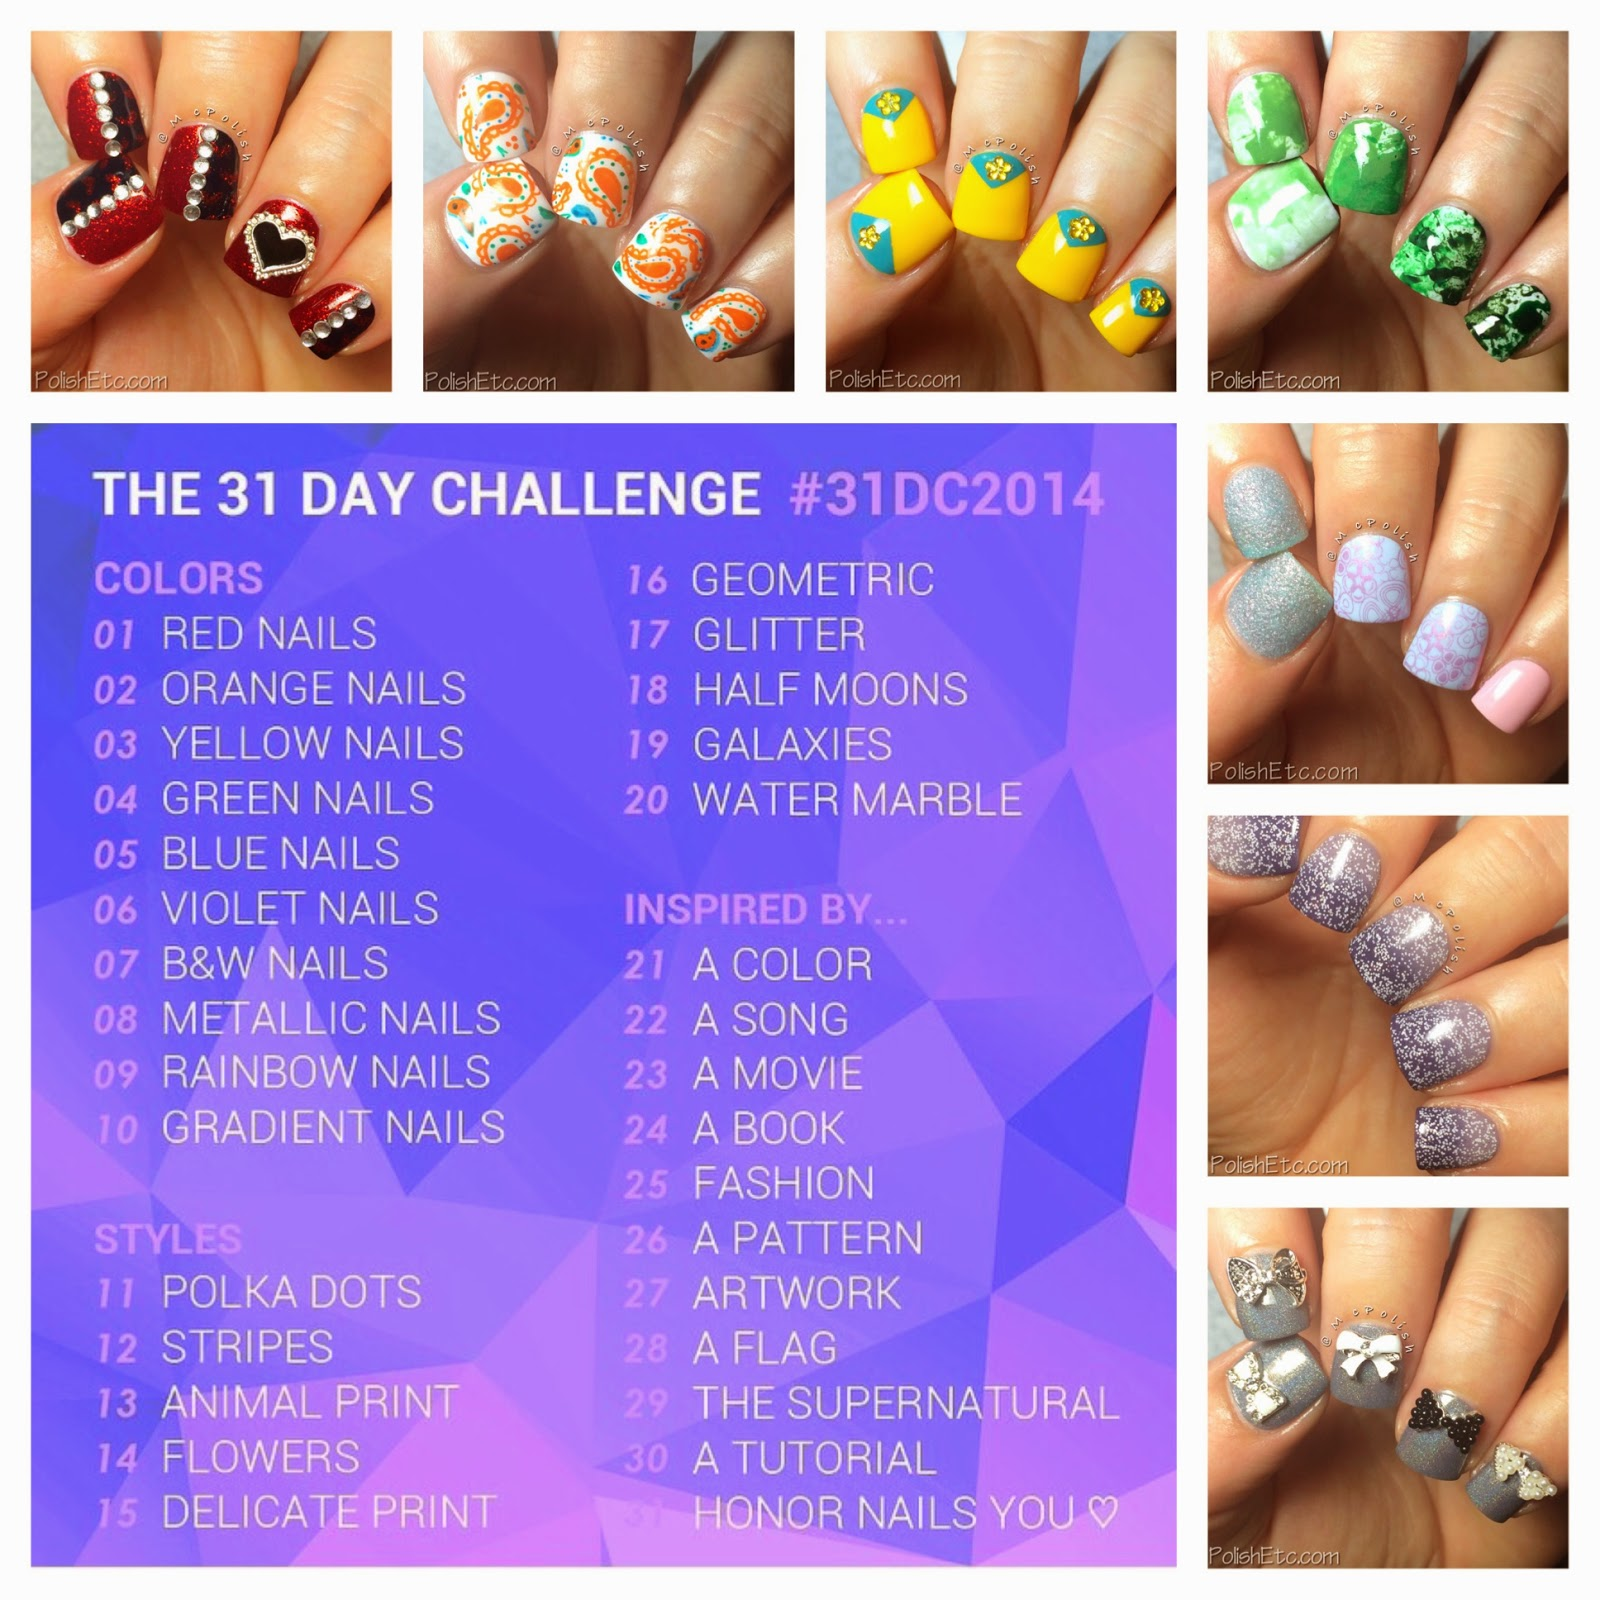 #31dc2014 - 31 Day Nail Art Challenge 2014 by McPolish